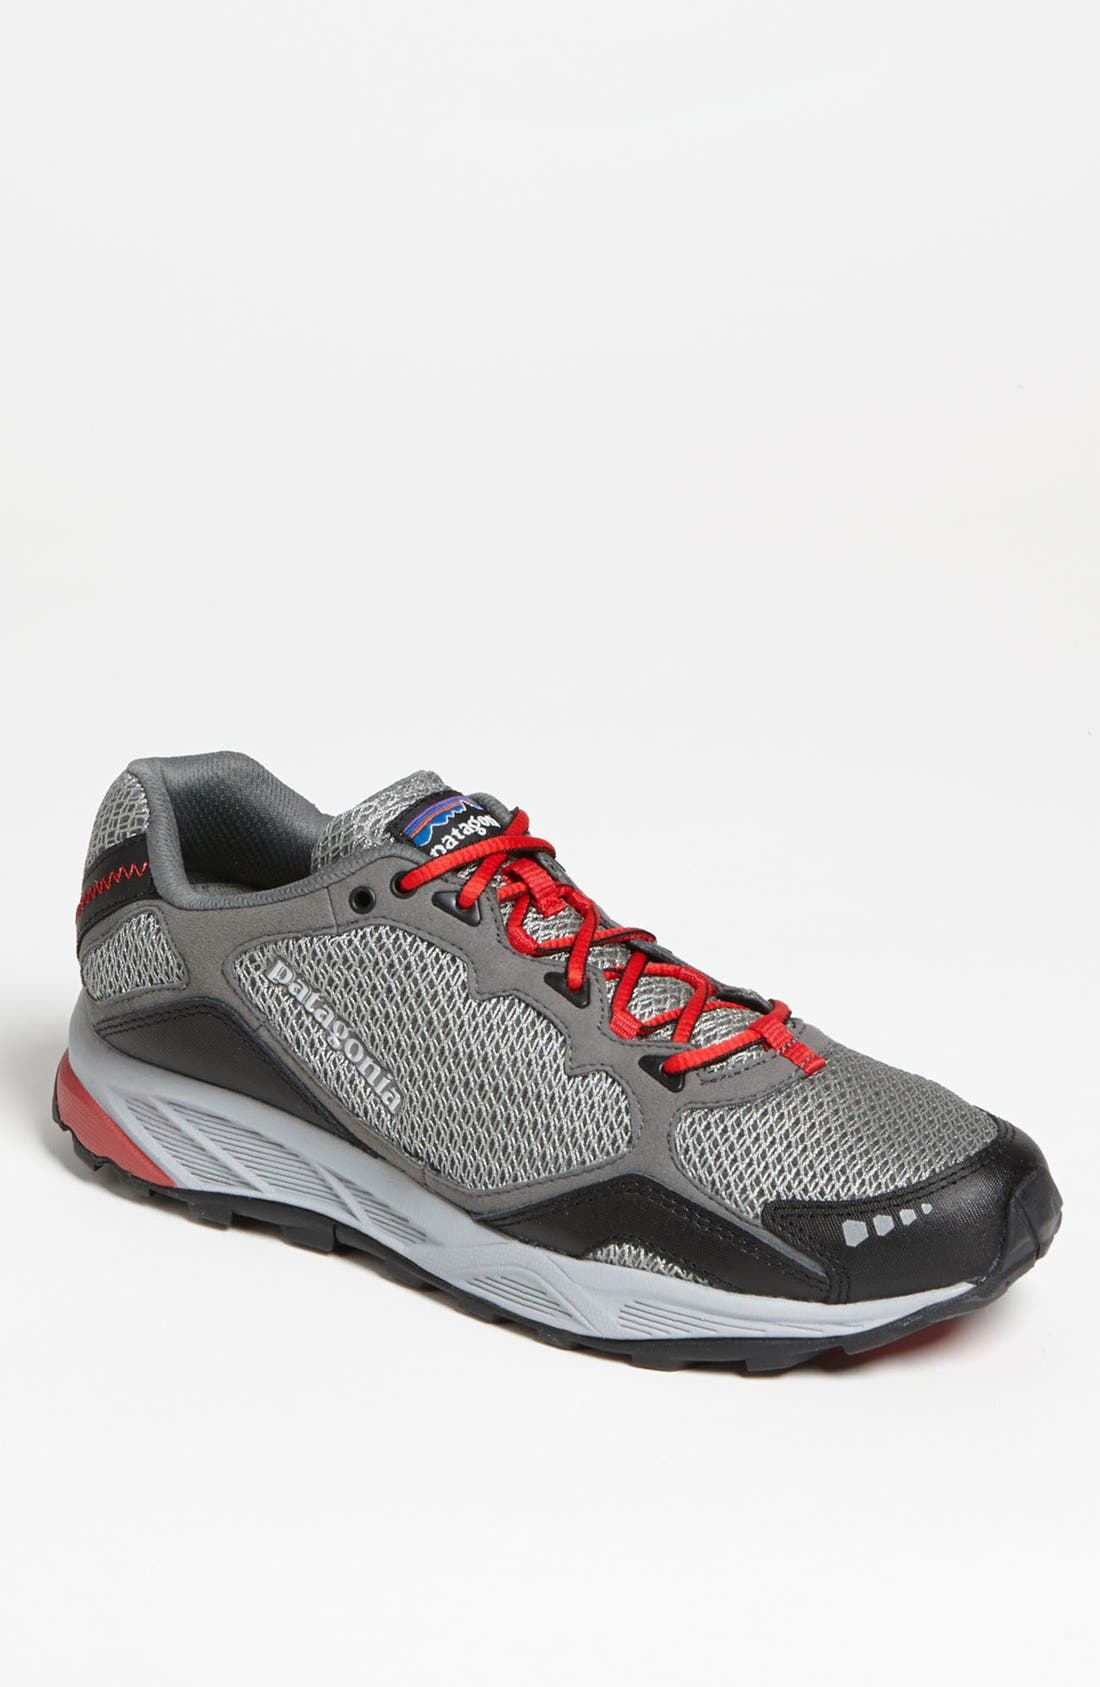 Main Image - Patagonia 'Gamut' Trail Running Shoe (Men)